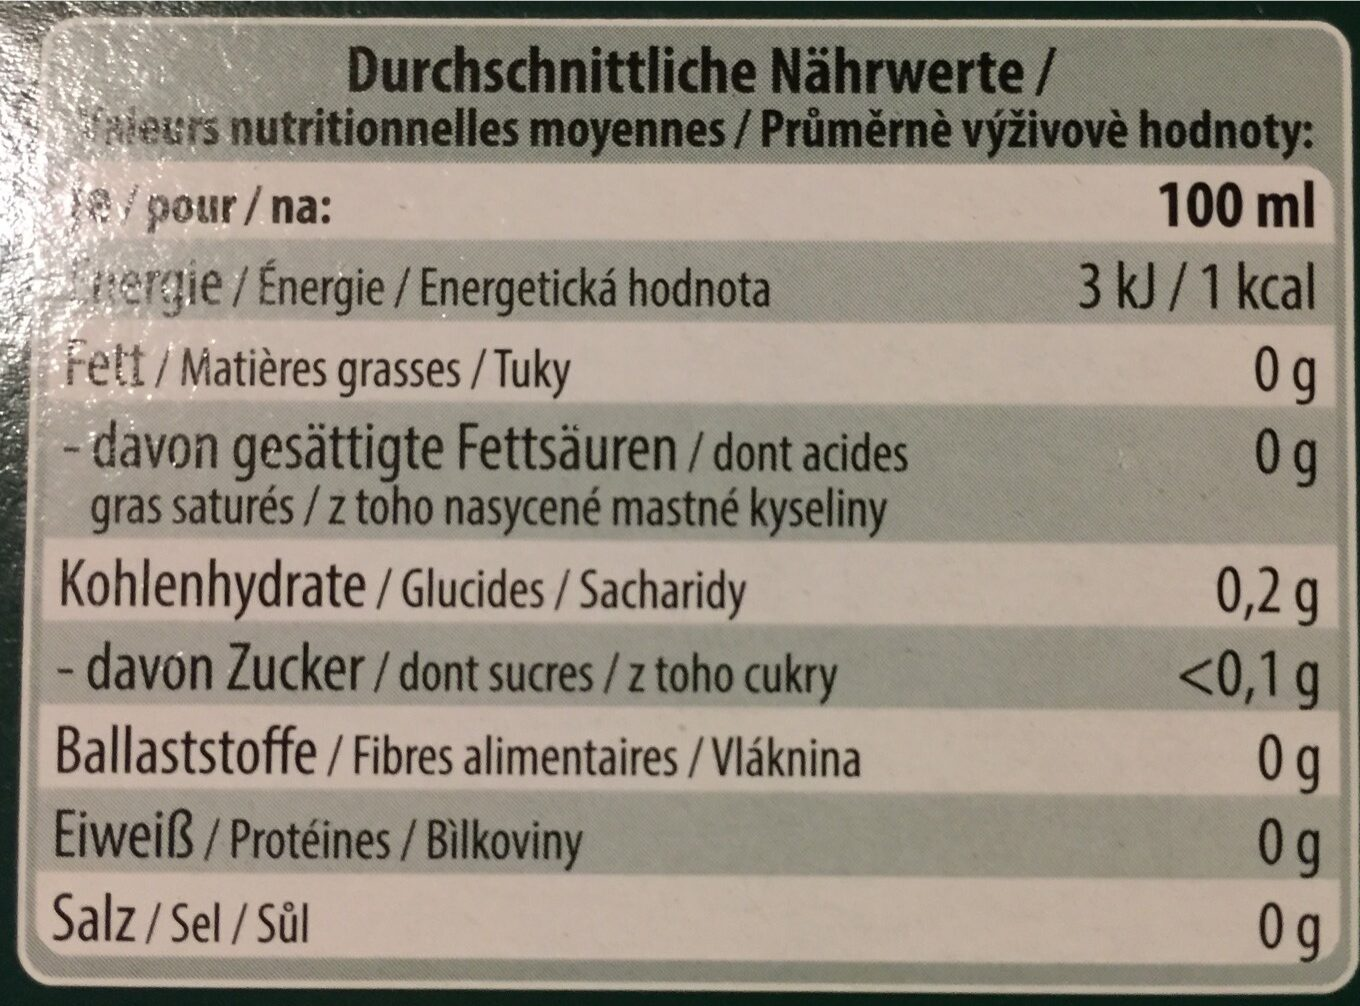 Kräutertee, Pfefferminze - Nutrition facts - fr